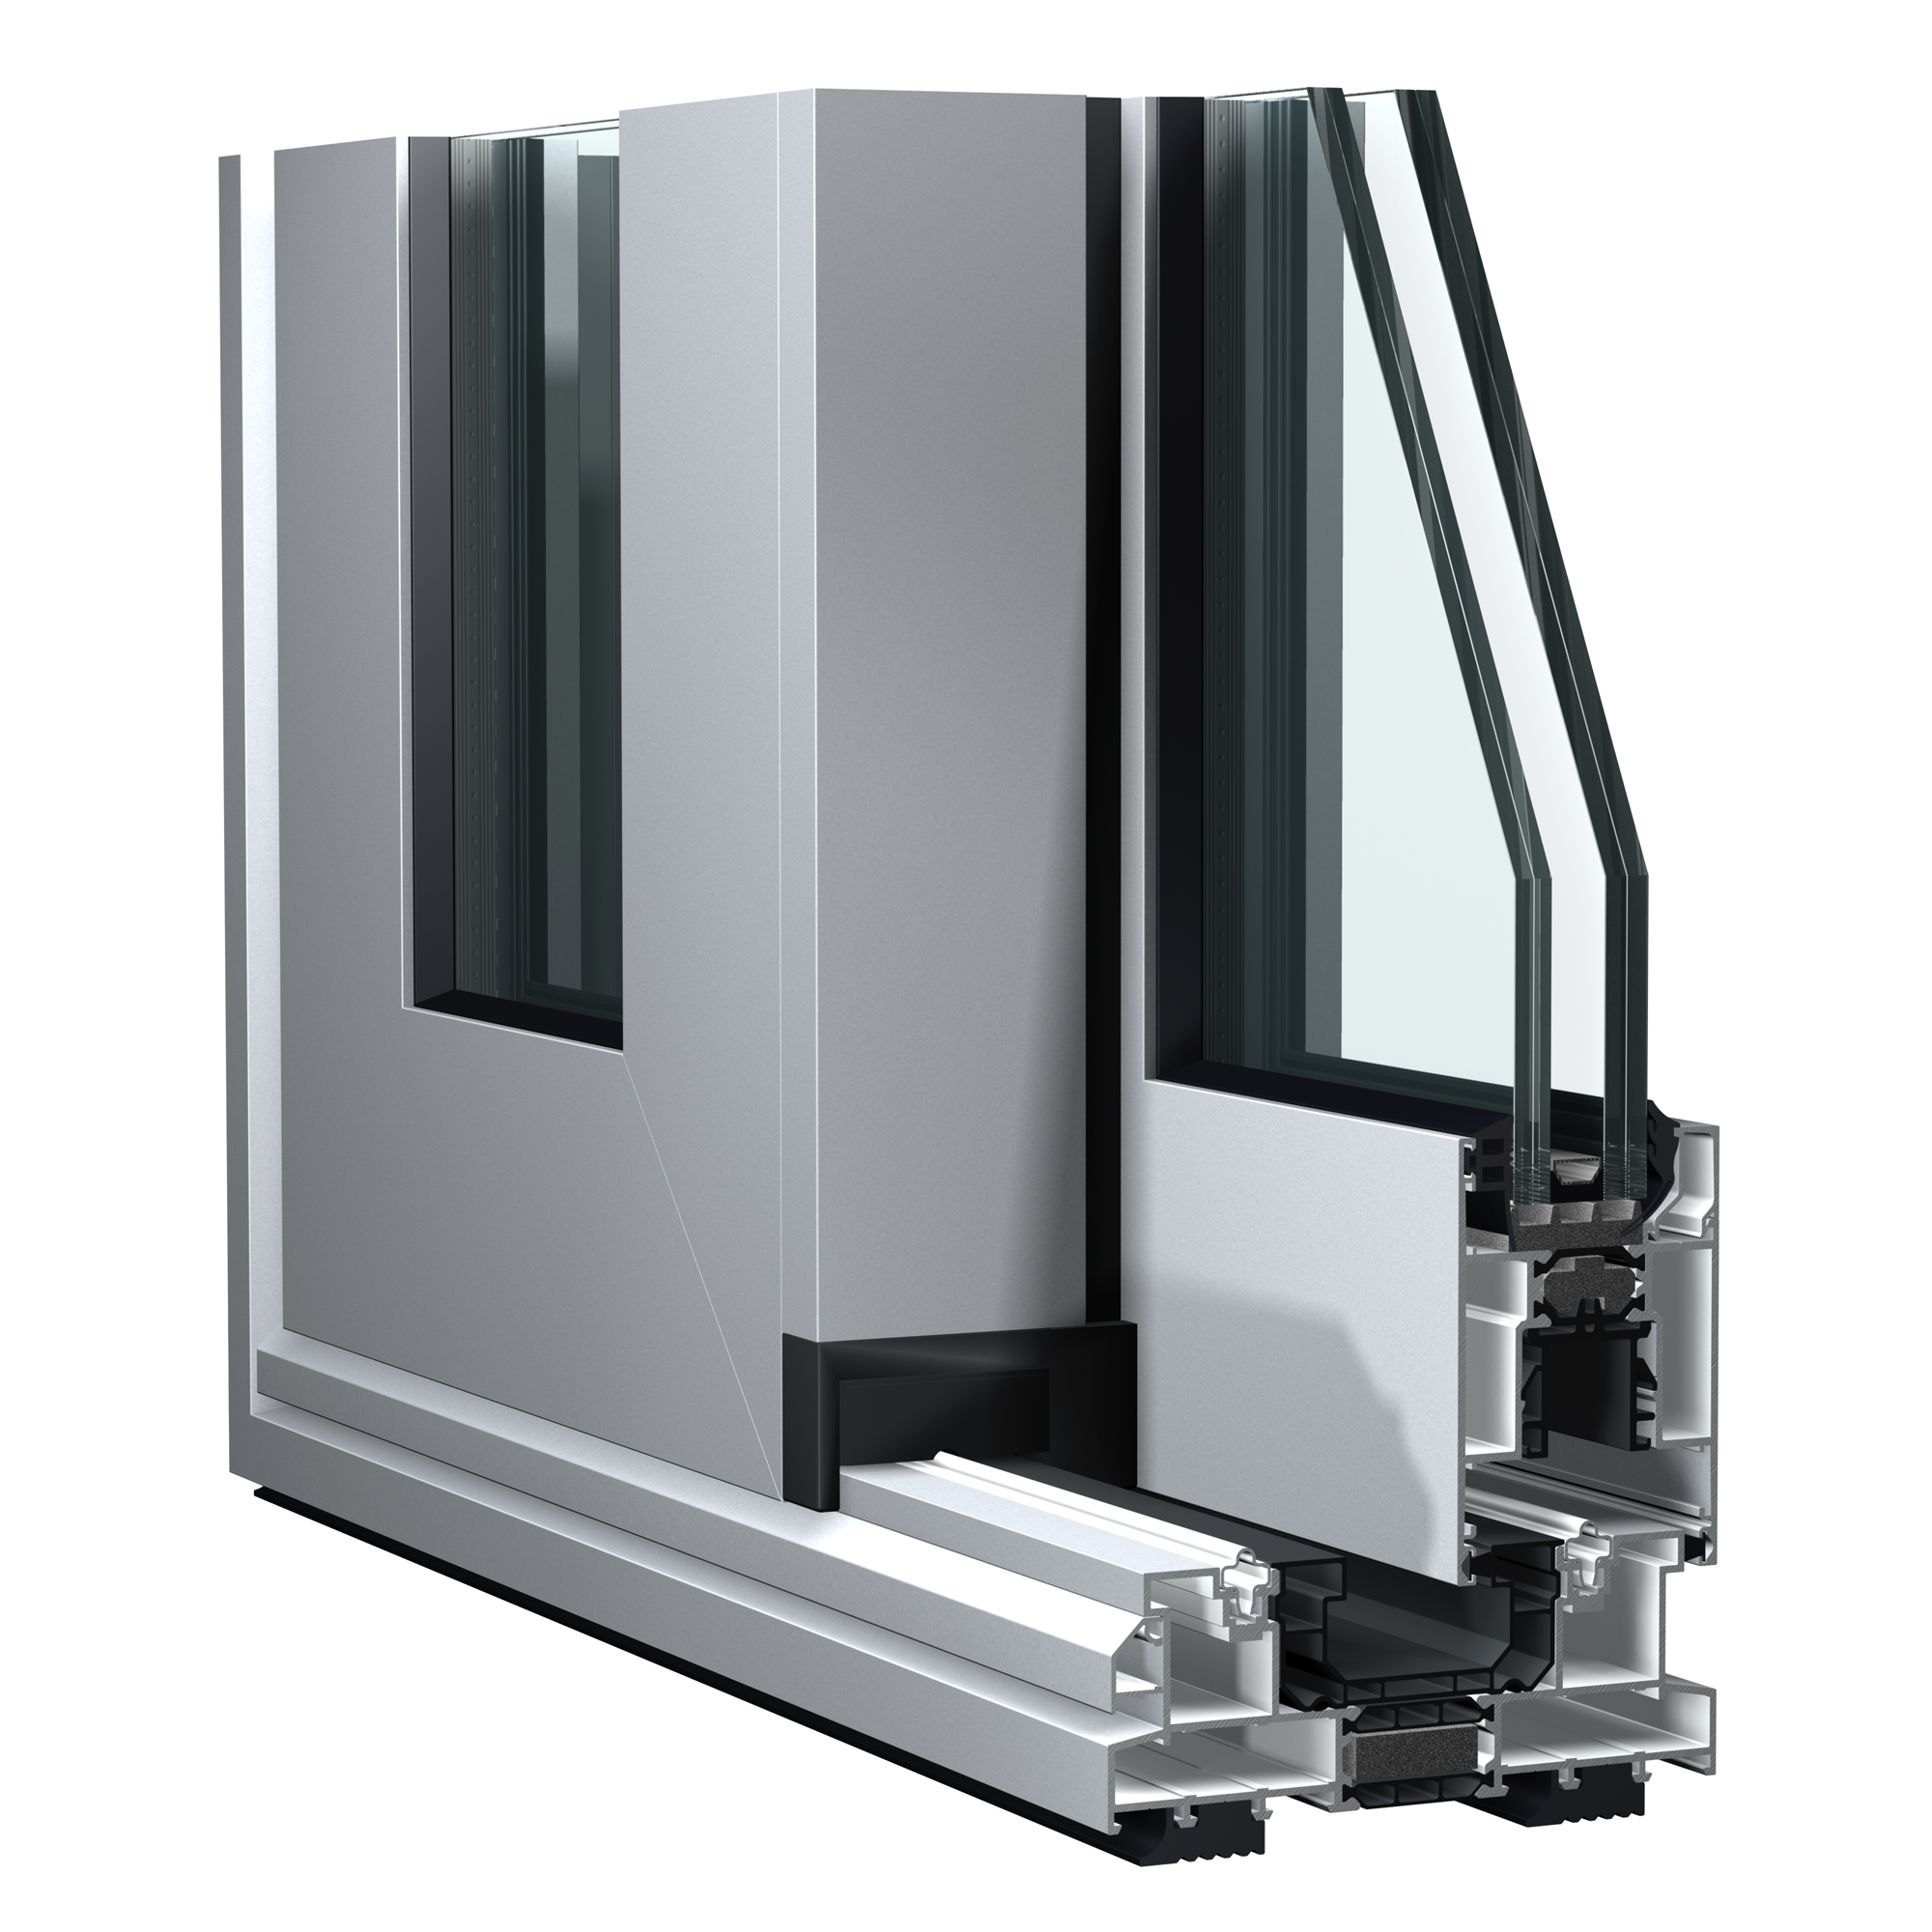 C160 sliding aluminium door system from Sapa